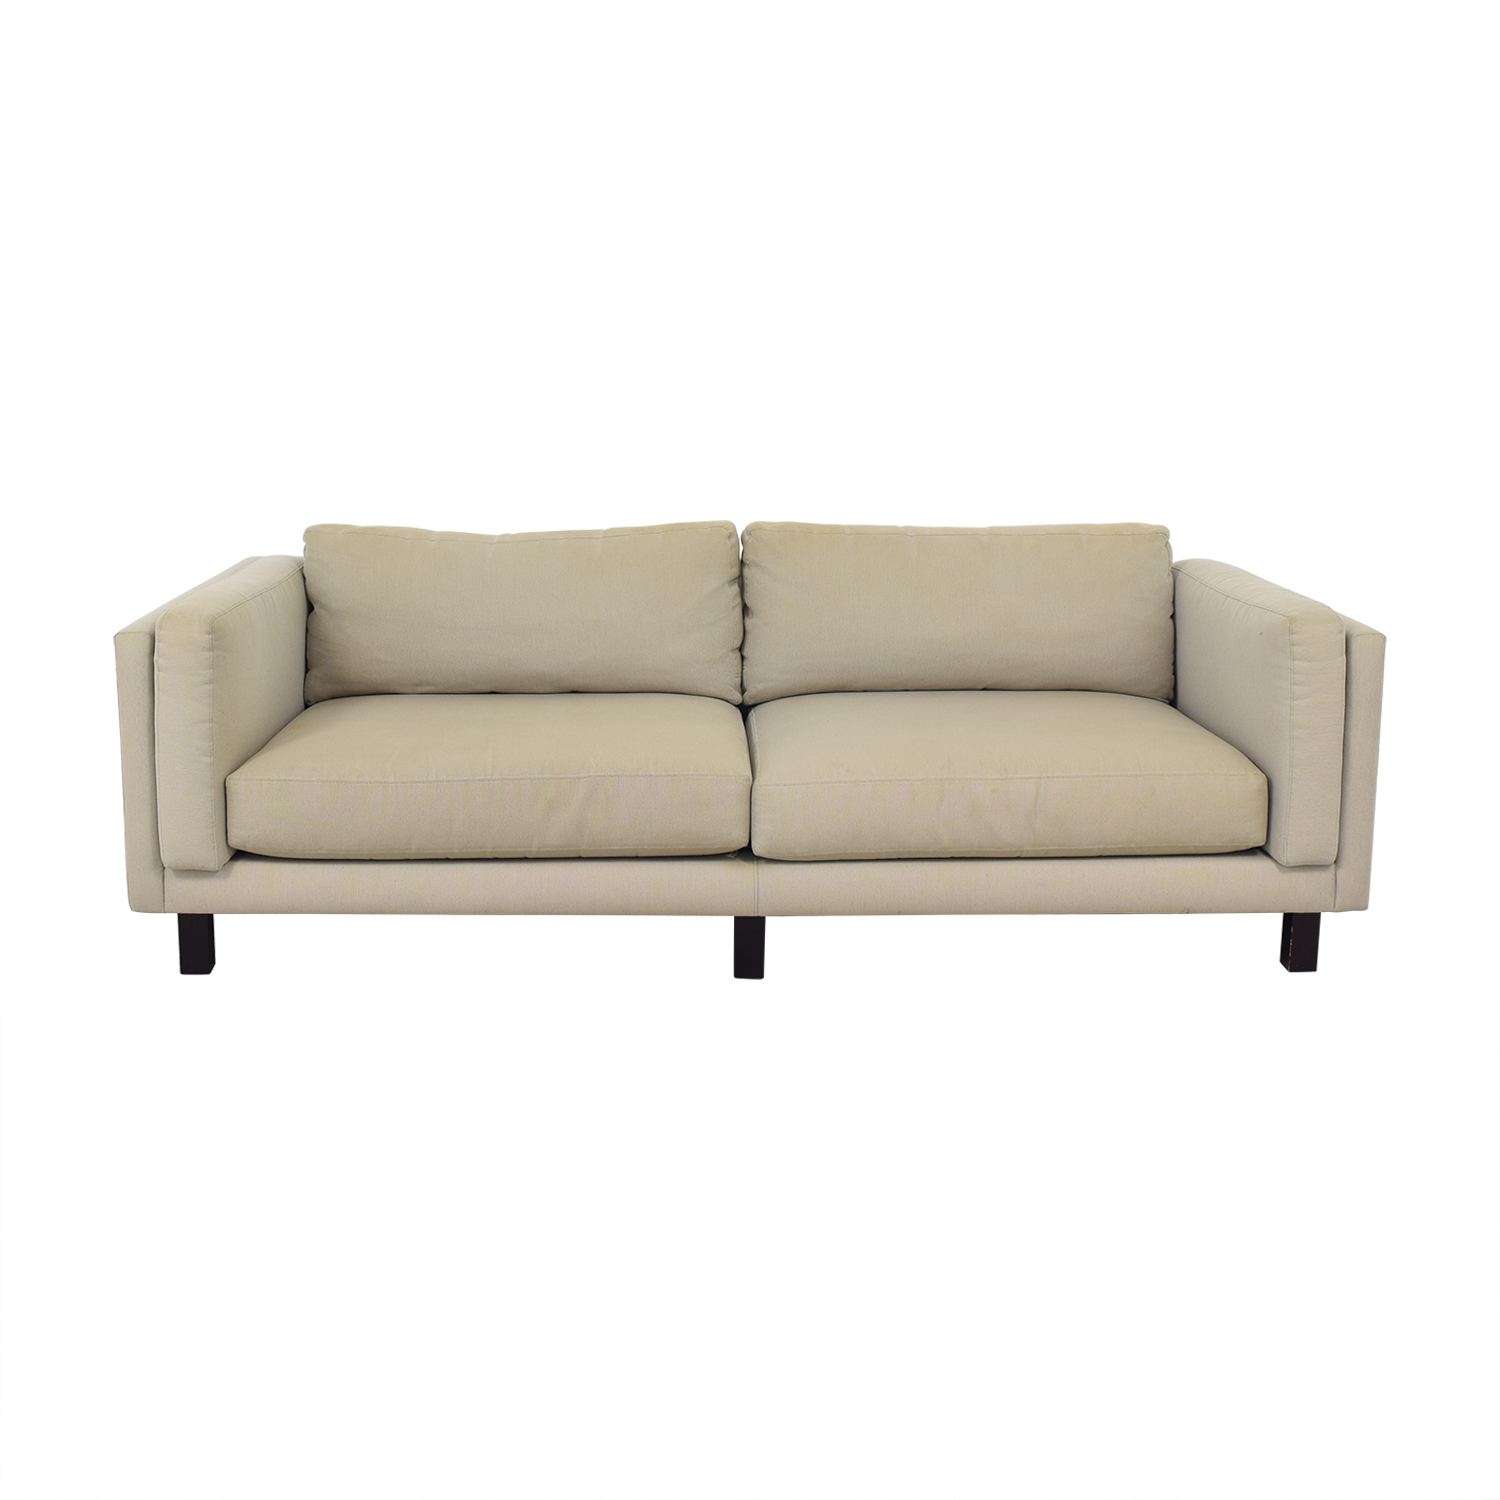 buy Room & Board Room & Board Cade Sofa online